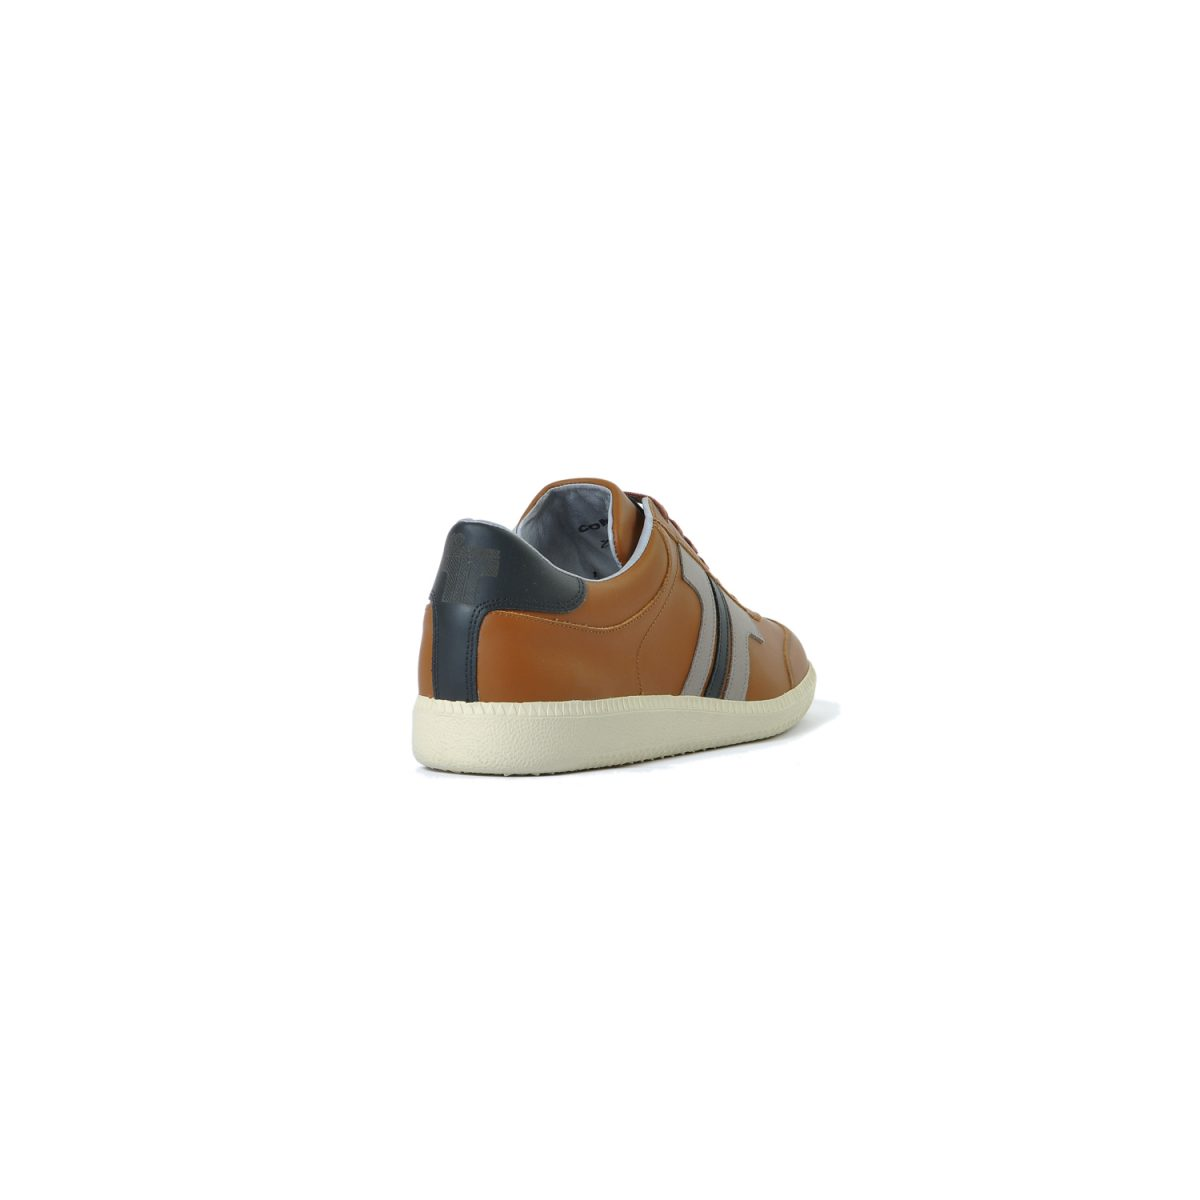 Tisza-shoes - Compakt - Bronze-grey-black